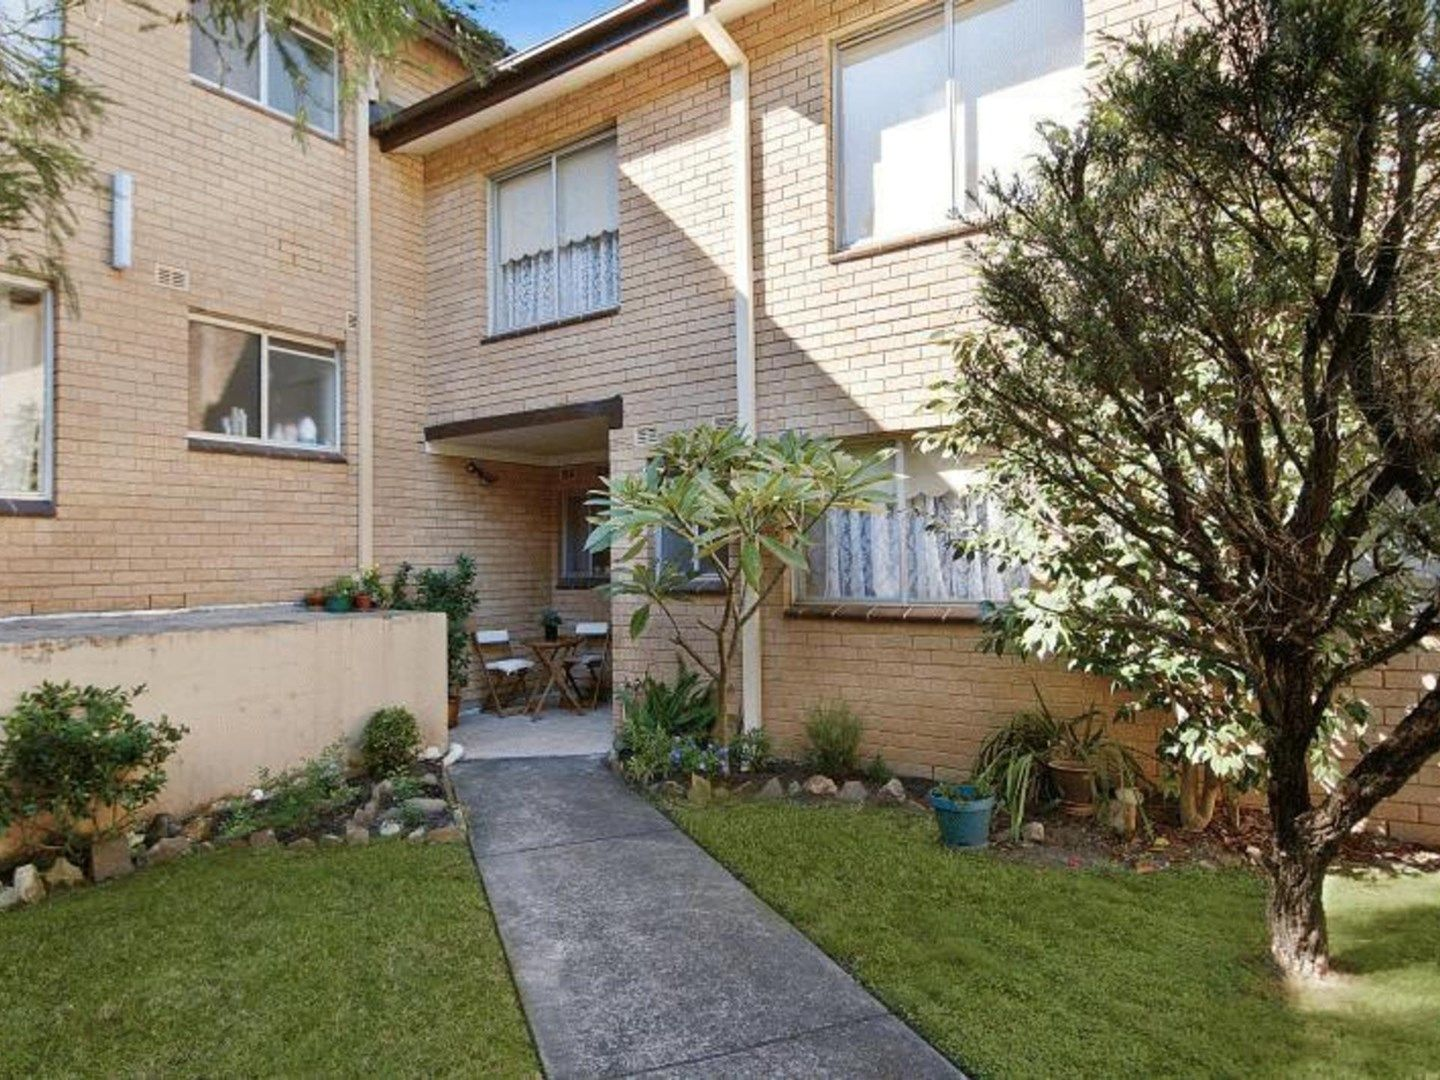 2/159-161 Epping Road, Macquarie Park NSW 2113, Image 0